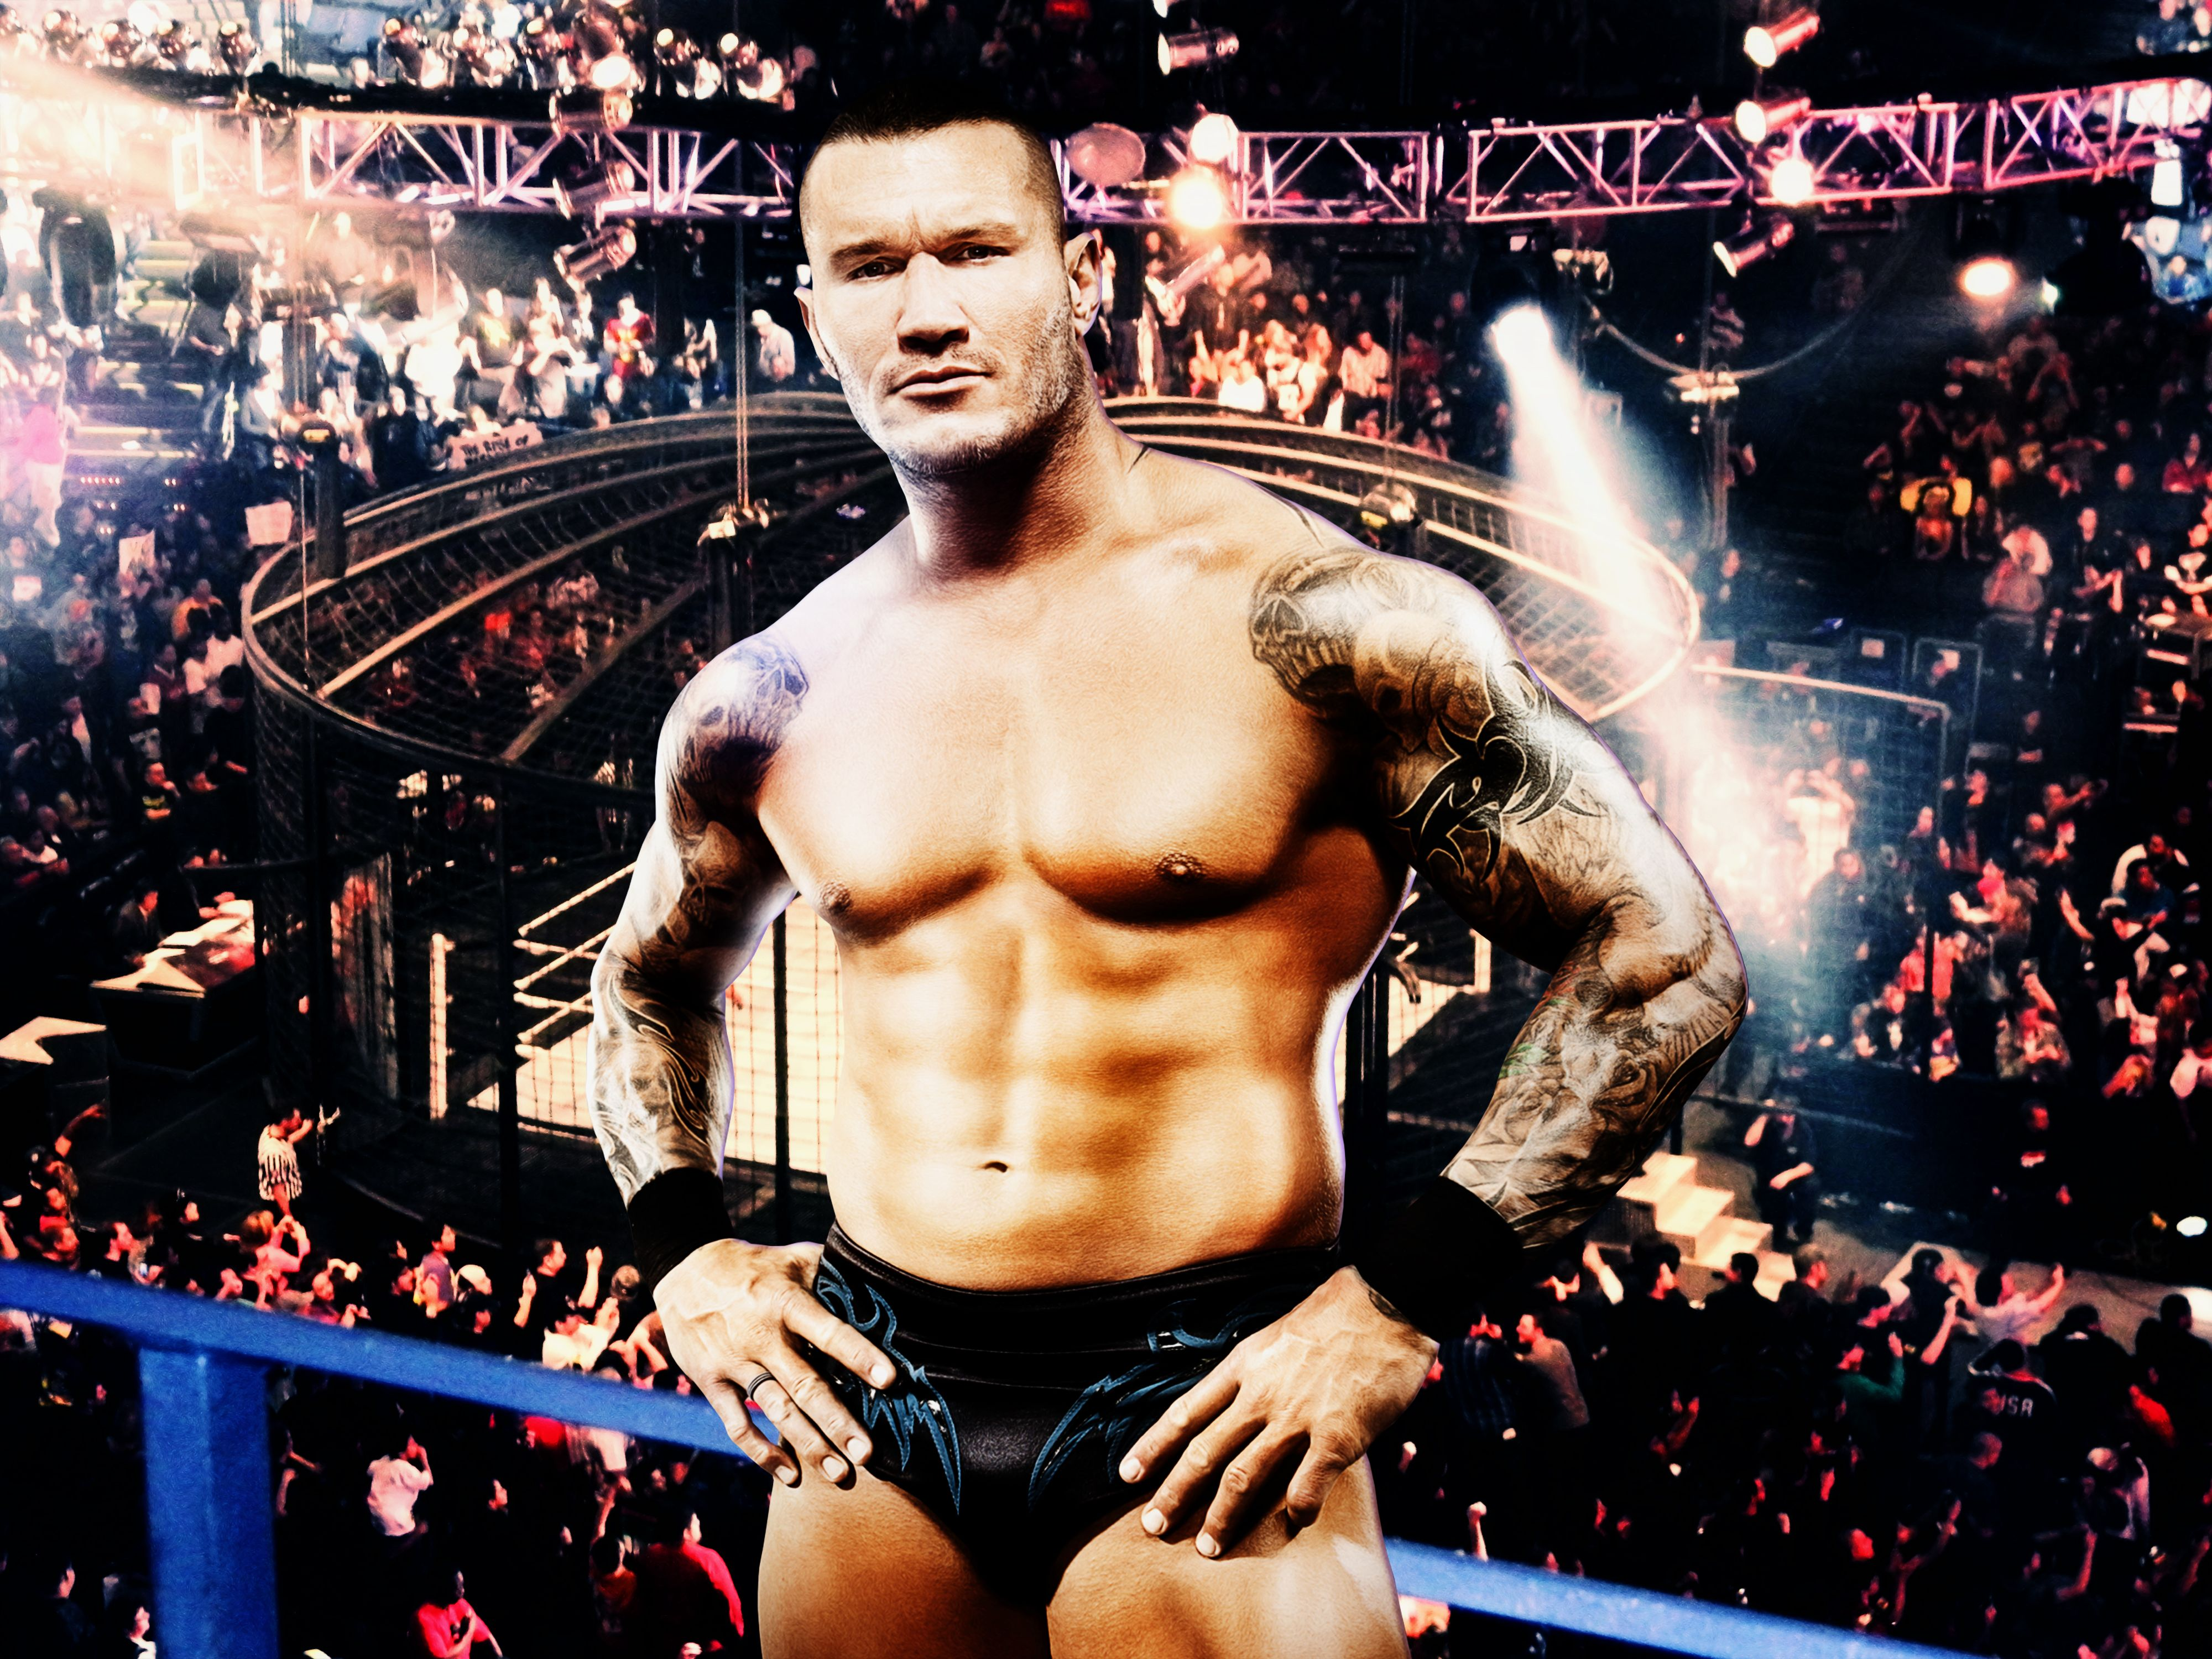 Randy Orton Wallpaper HD Find Best Latest For Your PC Desktop Background And Mobile Phones